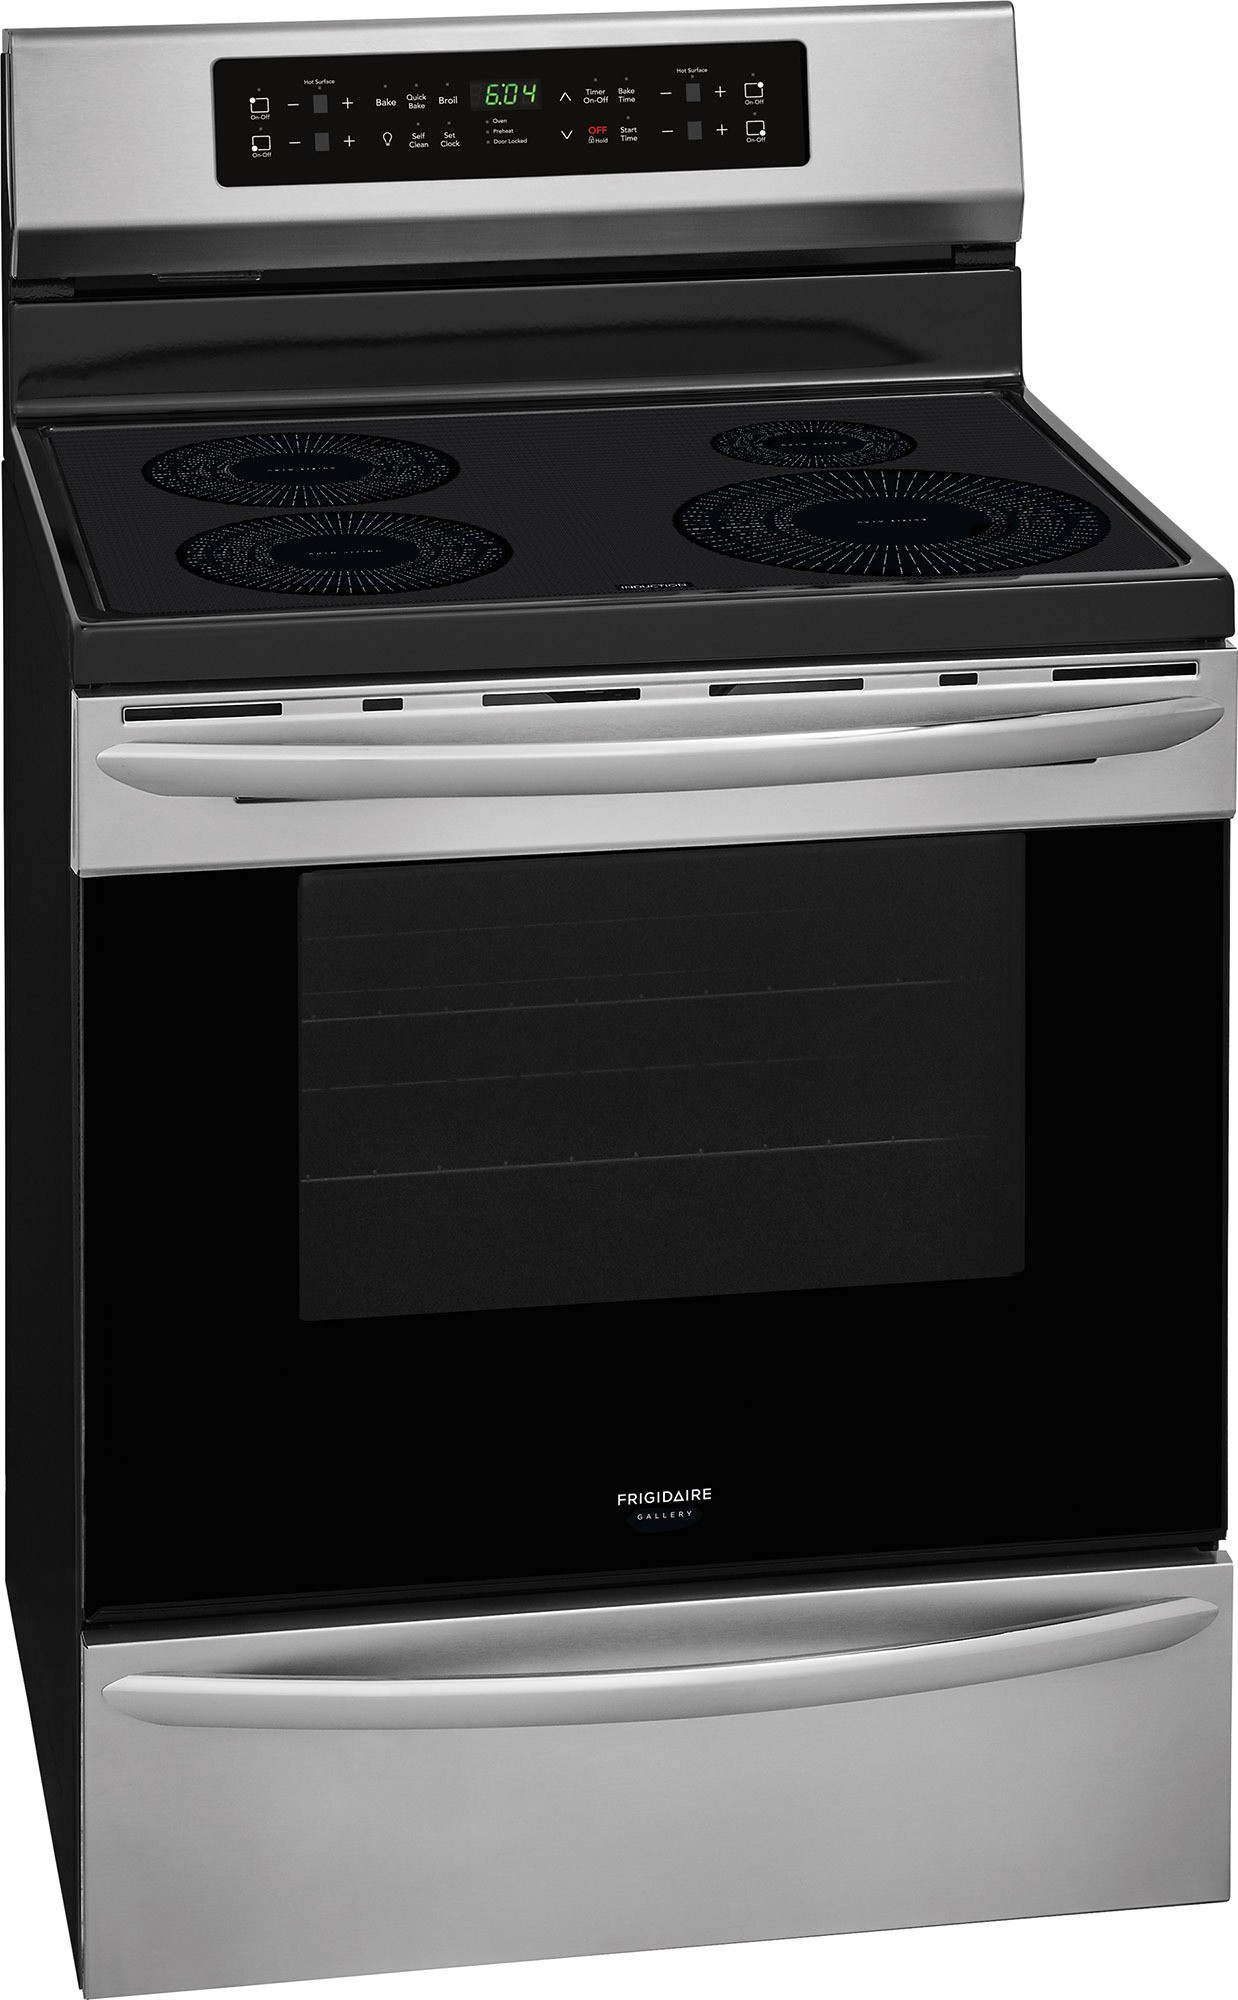 Fgif3036tf Frigidaire Gallery 30 Quot Freestanding Induction